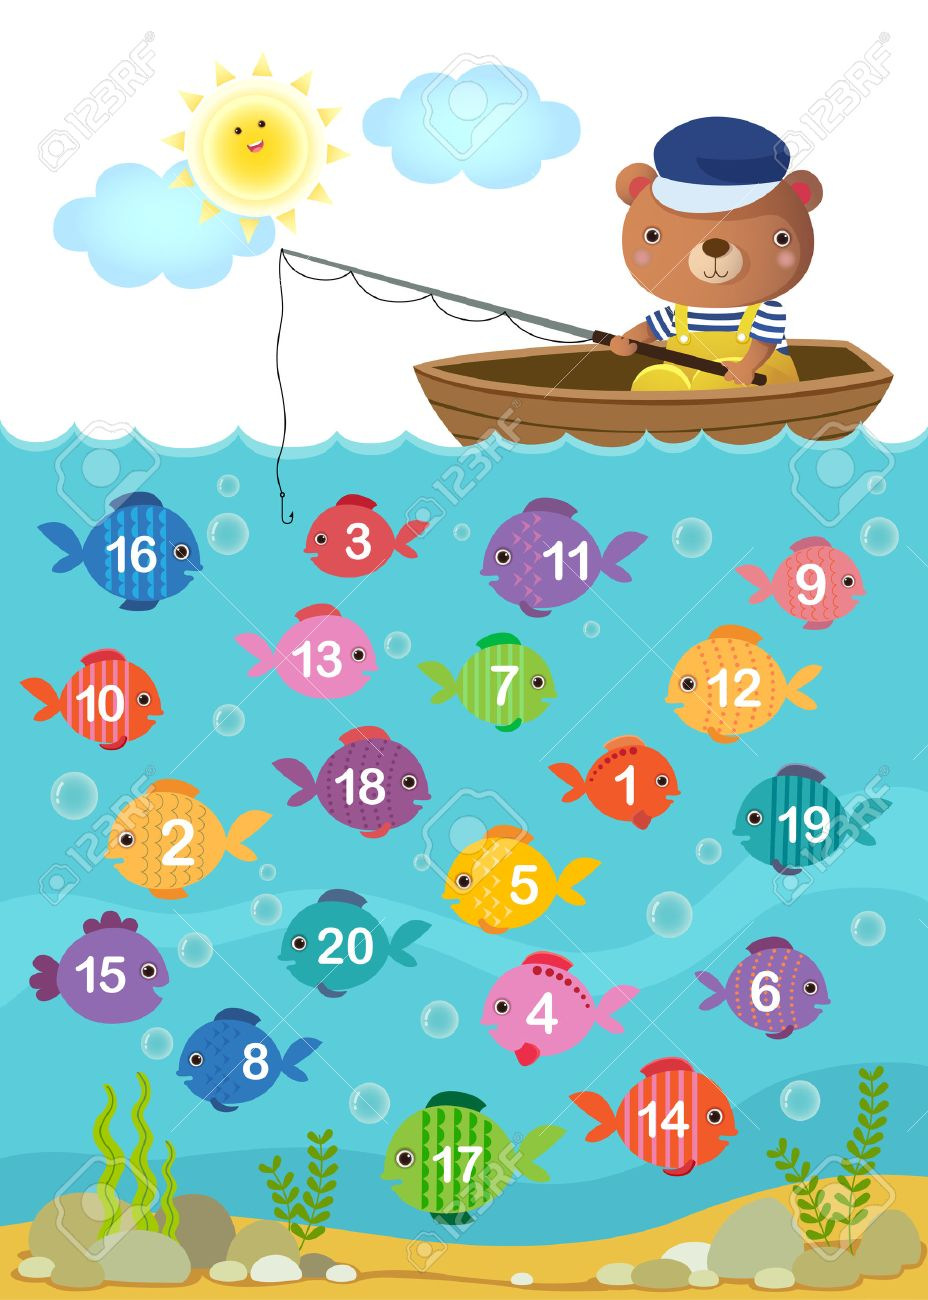 Worksheet for kindergarten kids to learn counting number with cute bear Stock Vector - 45761266